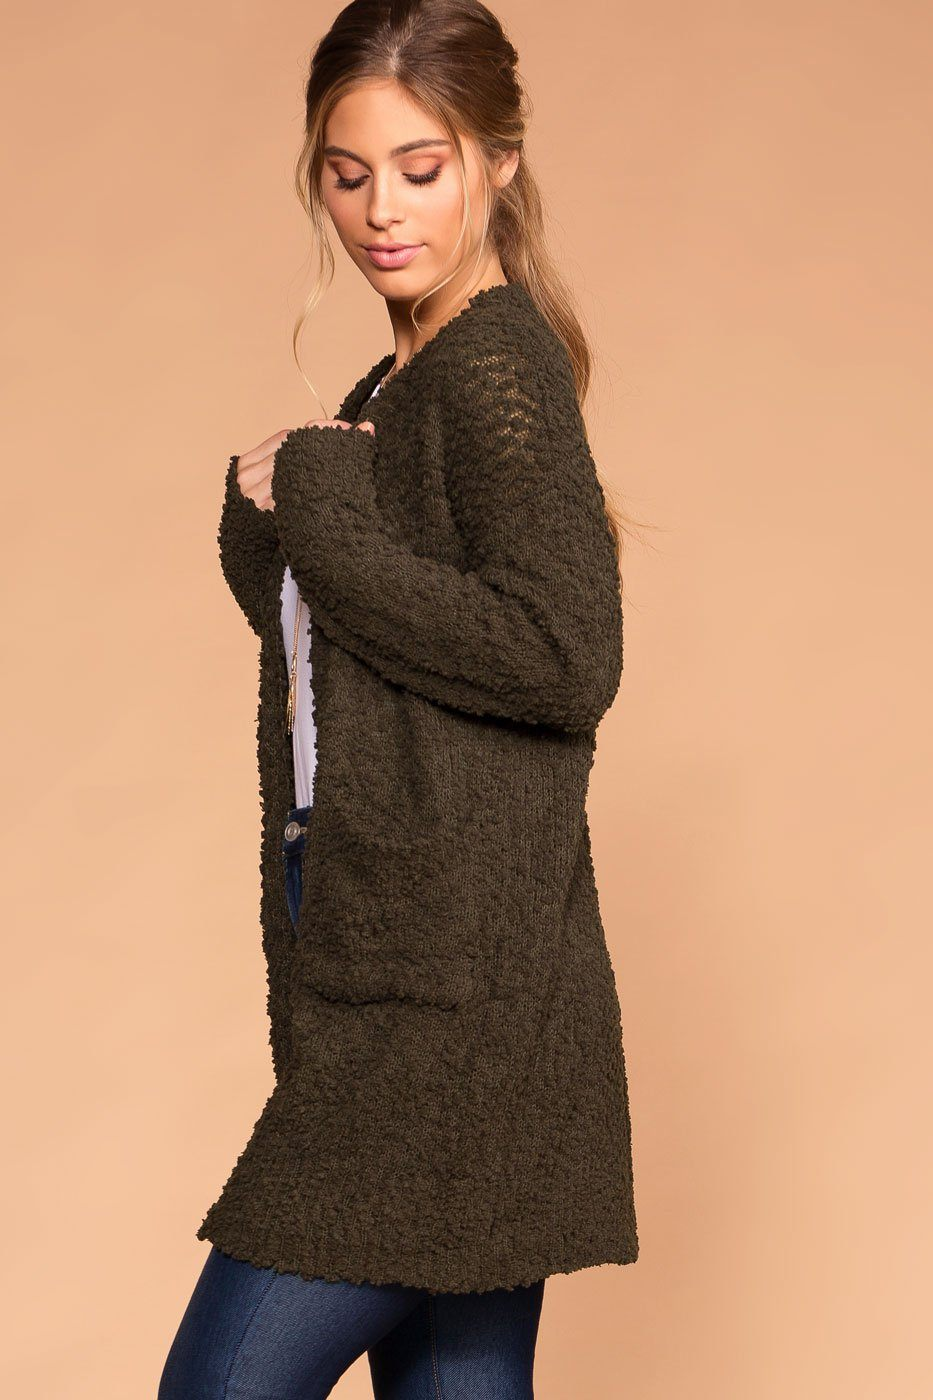 Mistletoe Dark Olive Pocket Cardigan | Shop Priceless